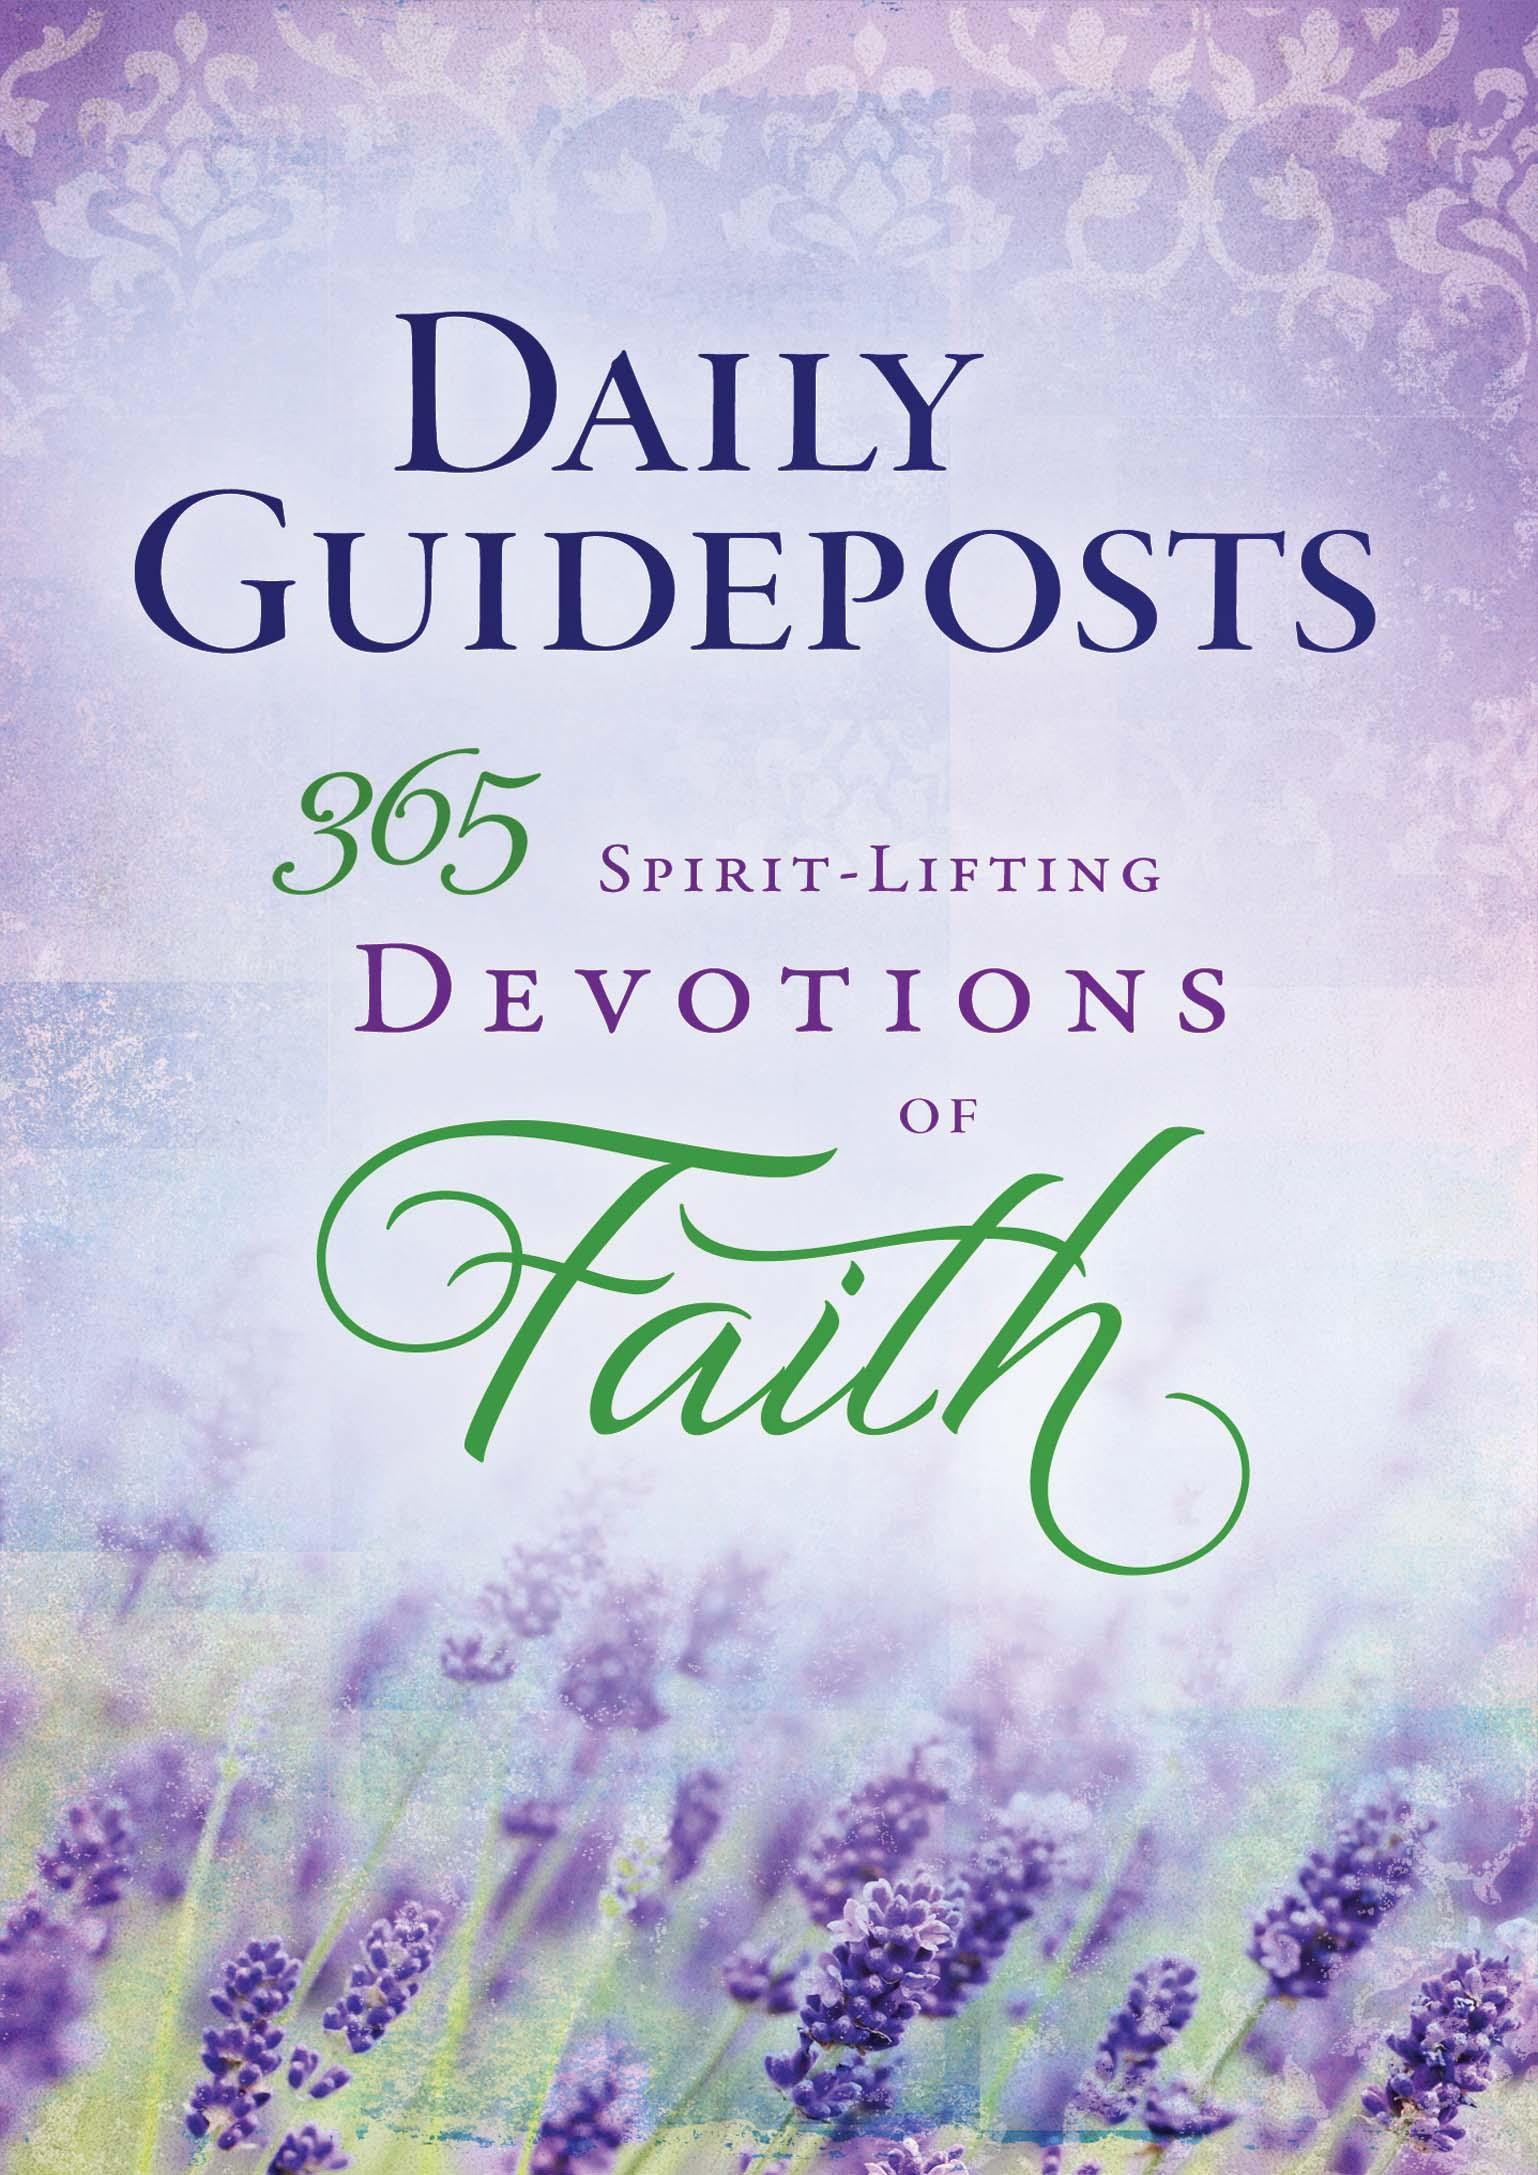 Daily Guideposts 365 Spirit-Lifting Devotions of Faith EB9781609366933